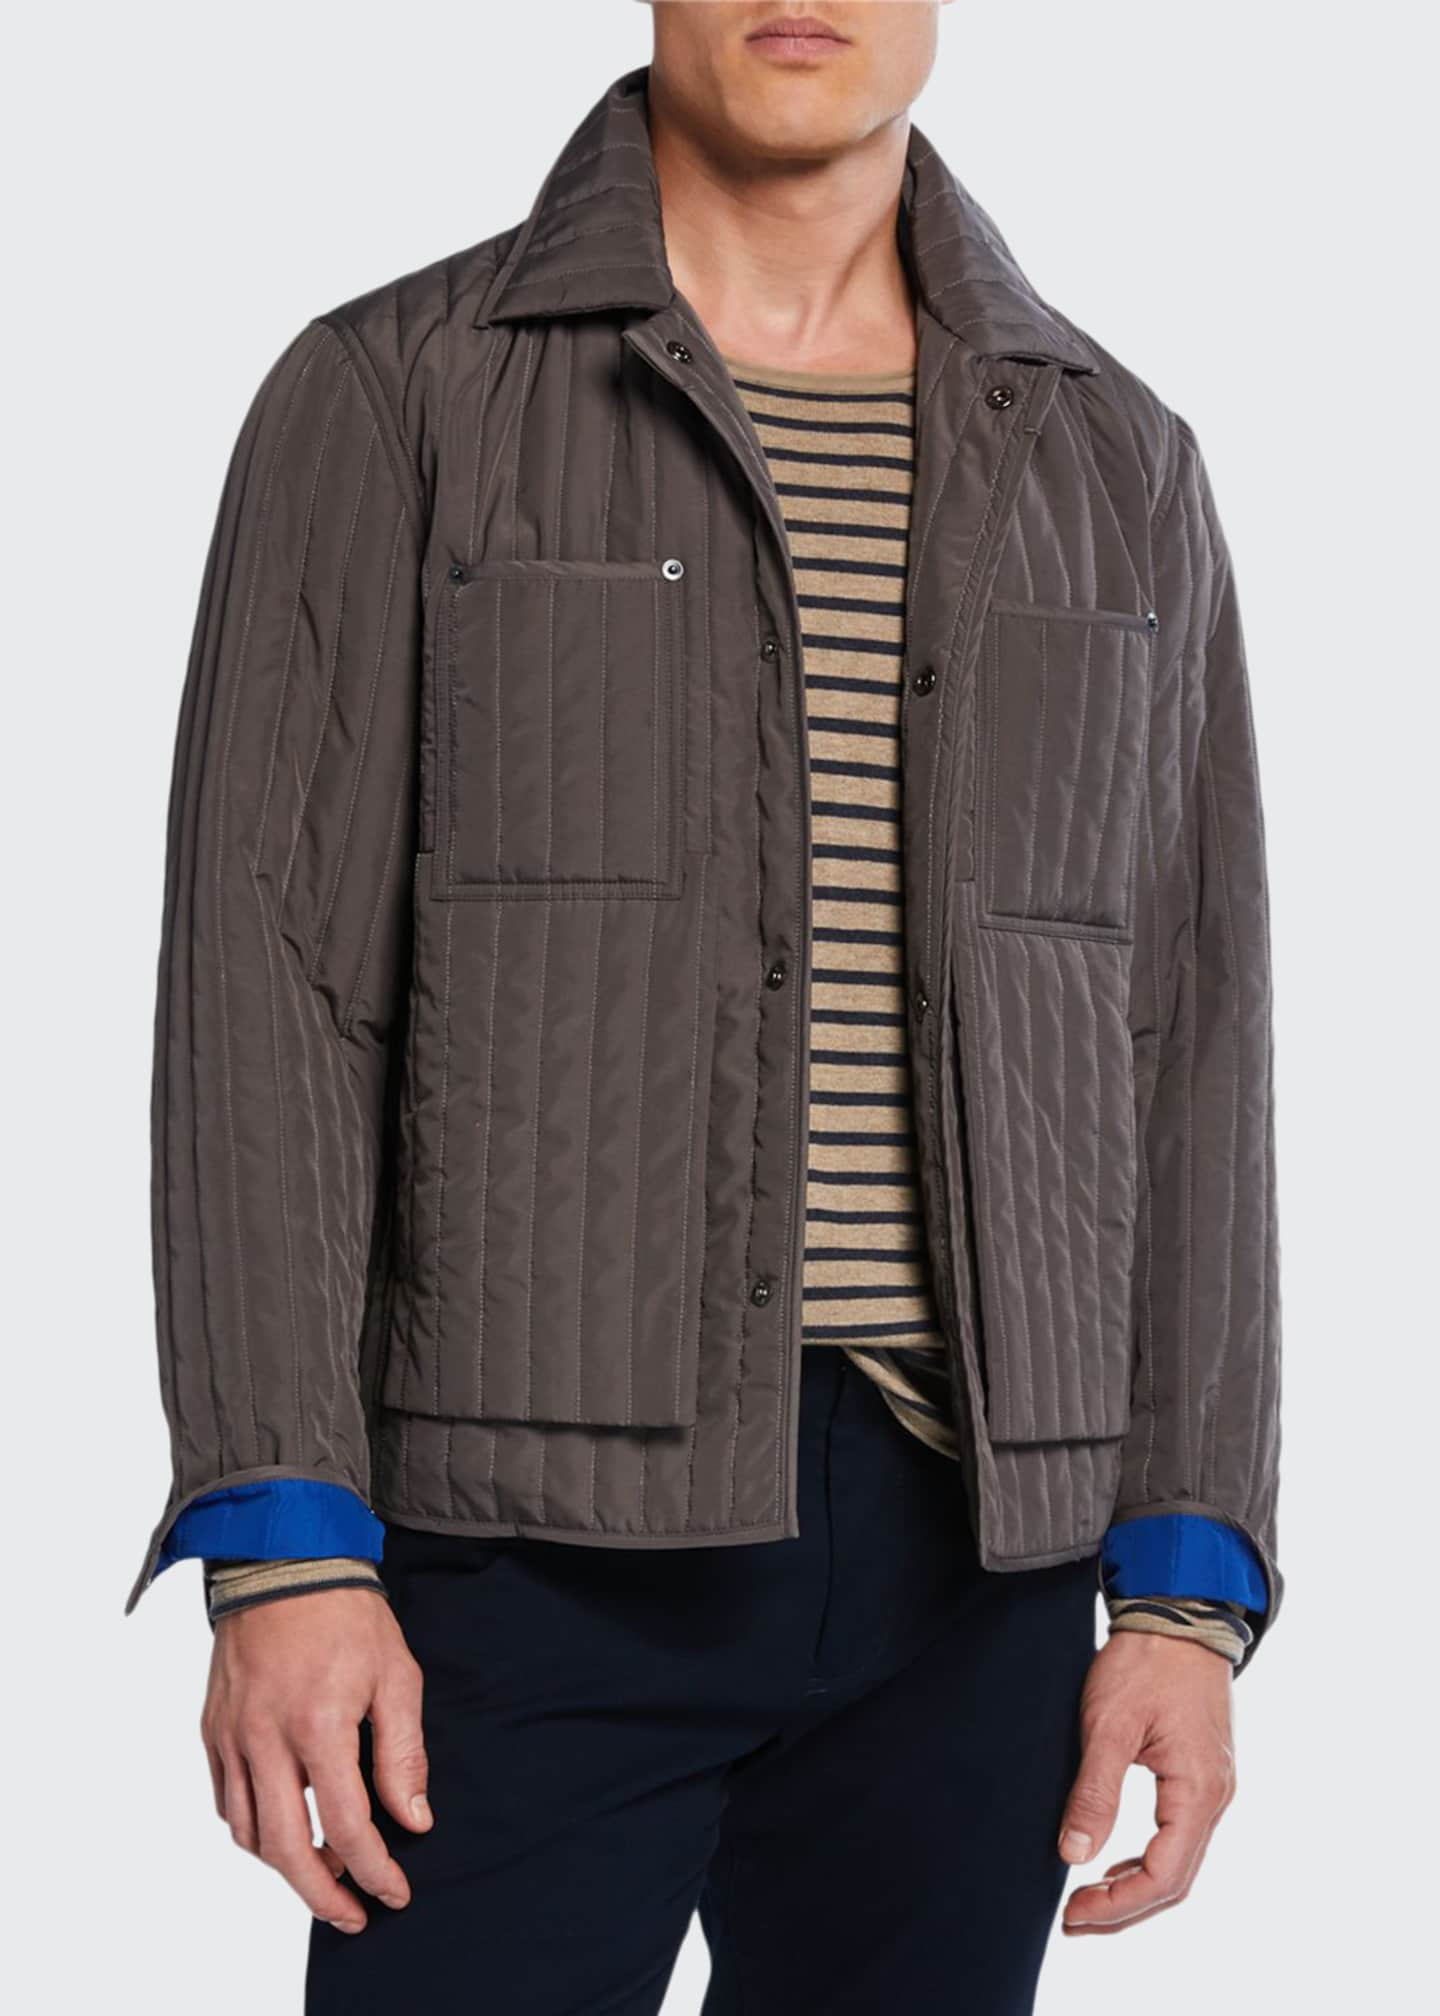 Craig Green Men's Quilted Worker Jacket